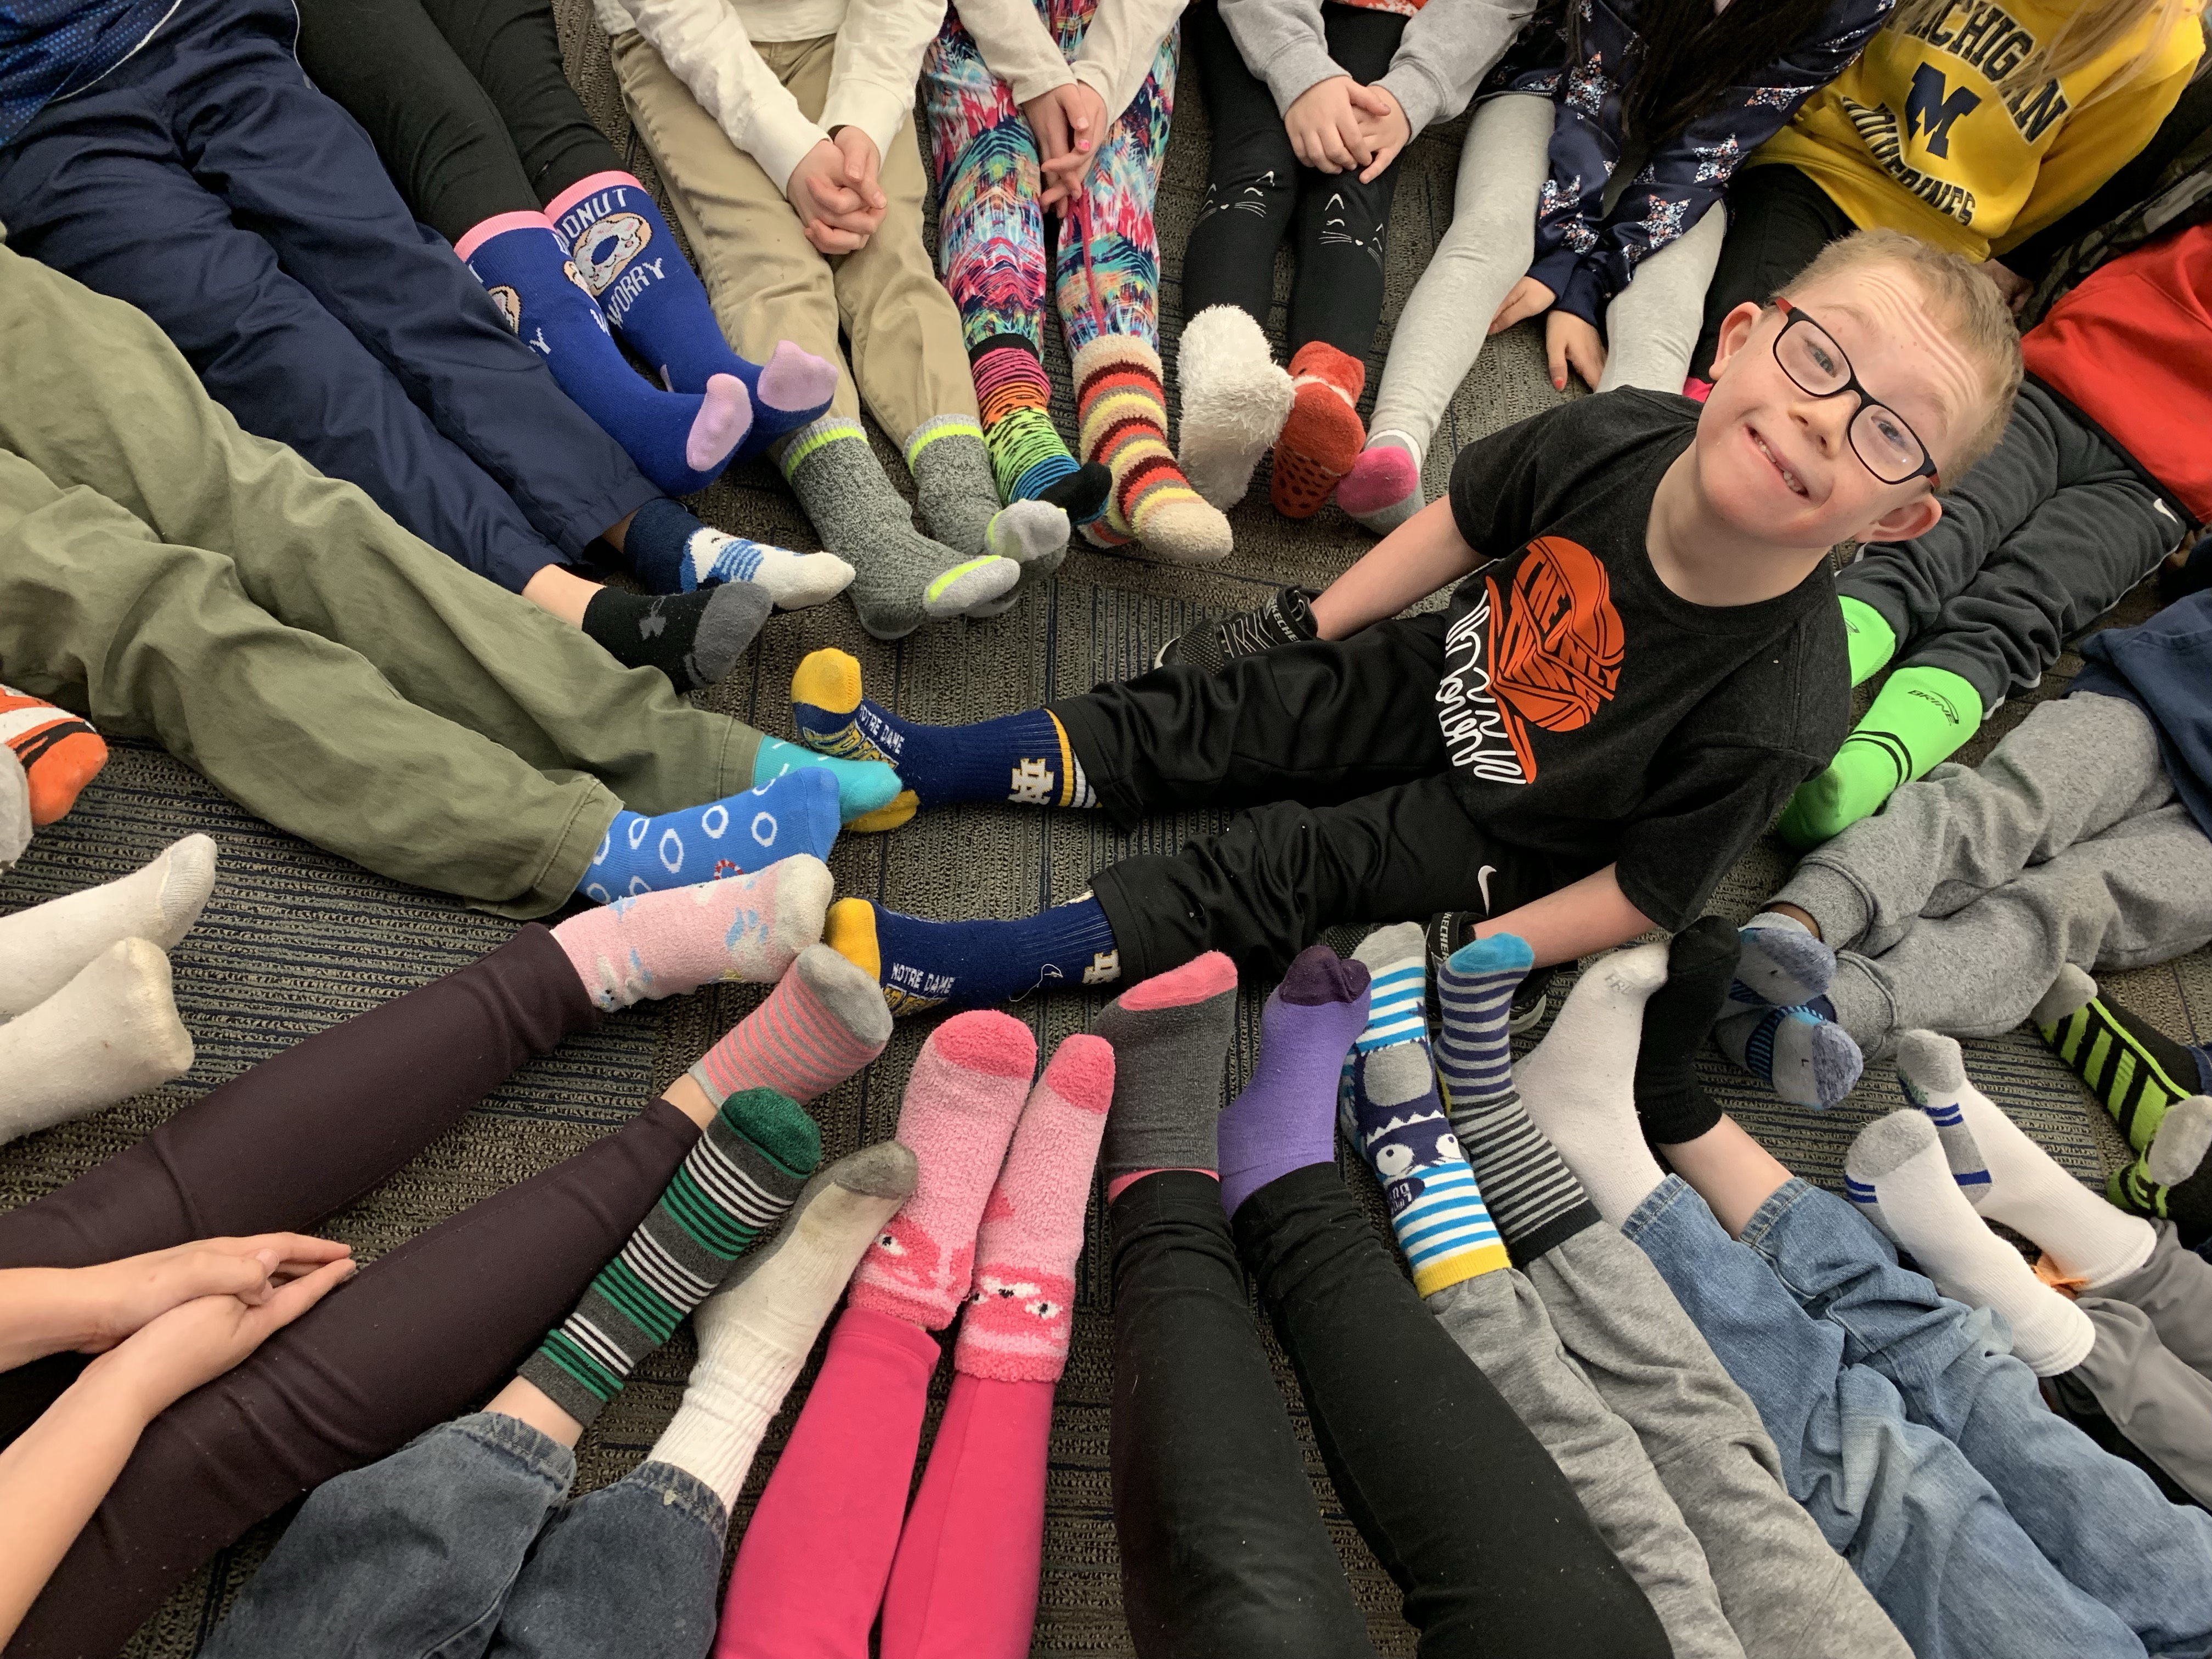 ELM-Down-Syndrome-Crazy-Socks-Day-3.21.19-1